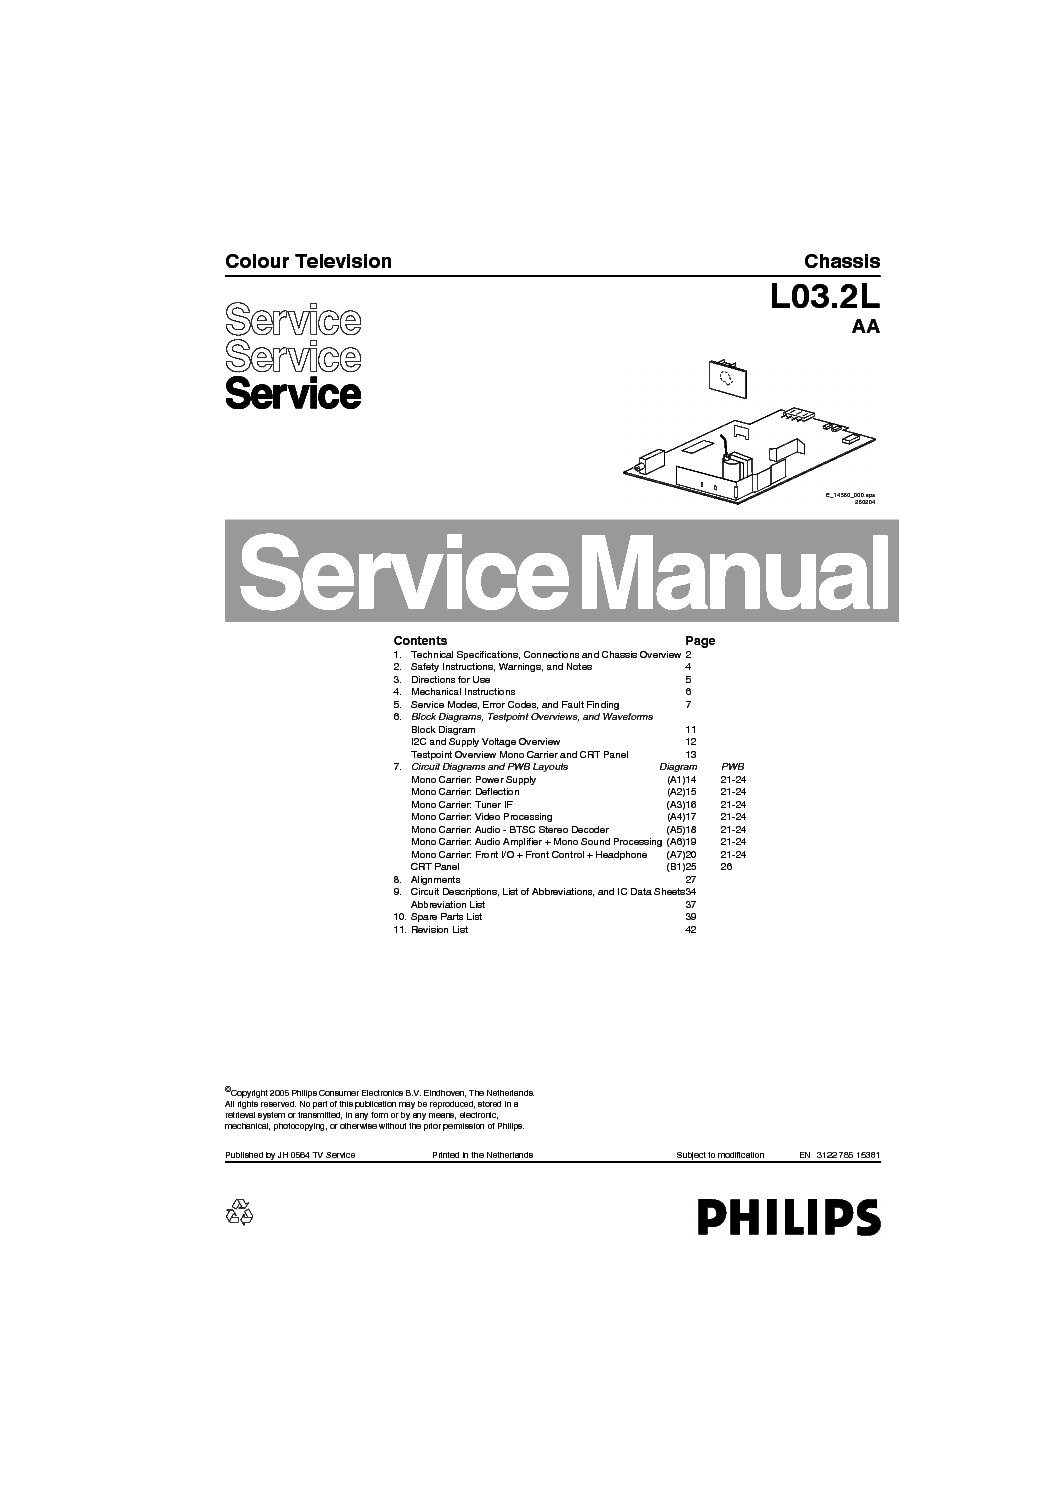 PHILIPS 21PT3205 55-CH.L03.2L-AA Service Manual download